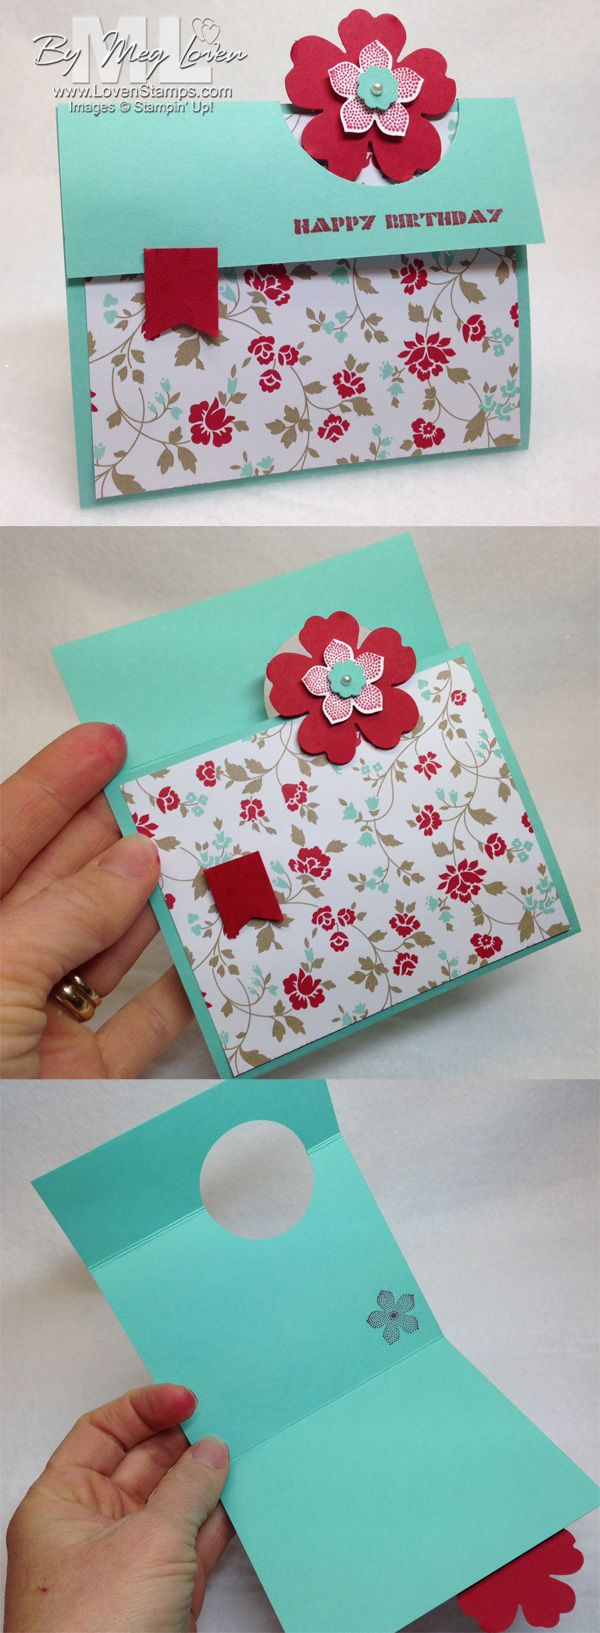 388 Best Card Making Videos Images On Pinterest Homemade Cards